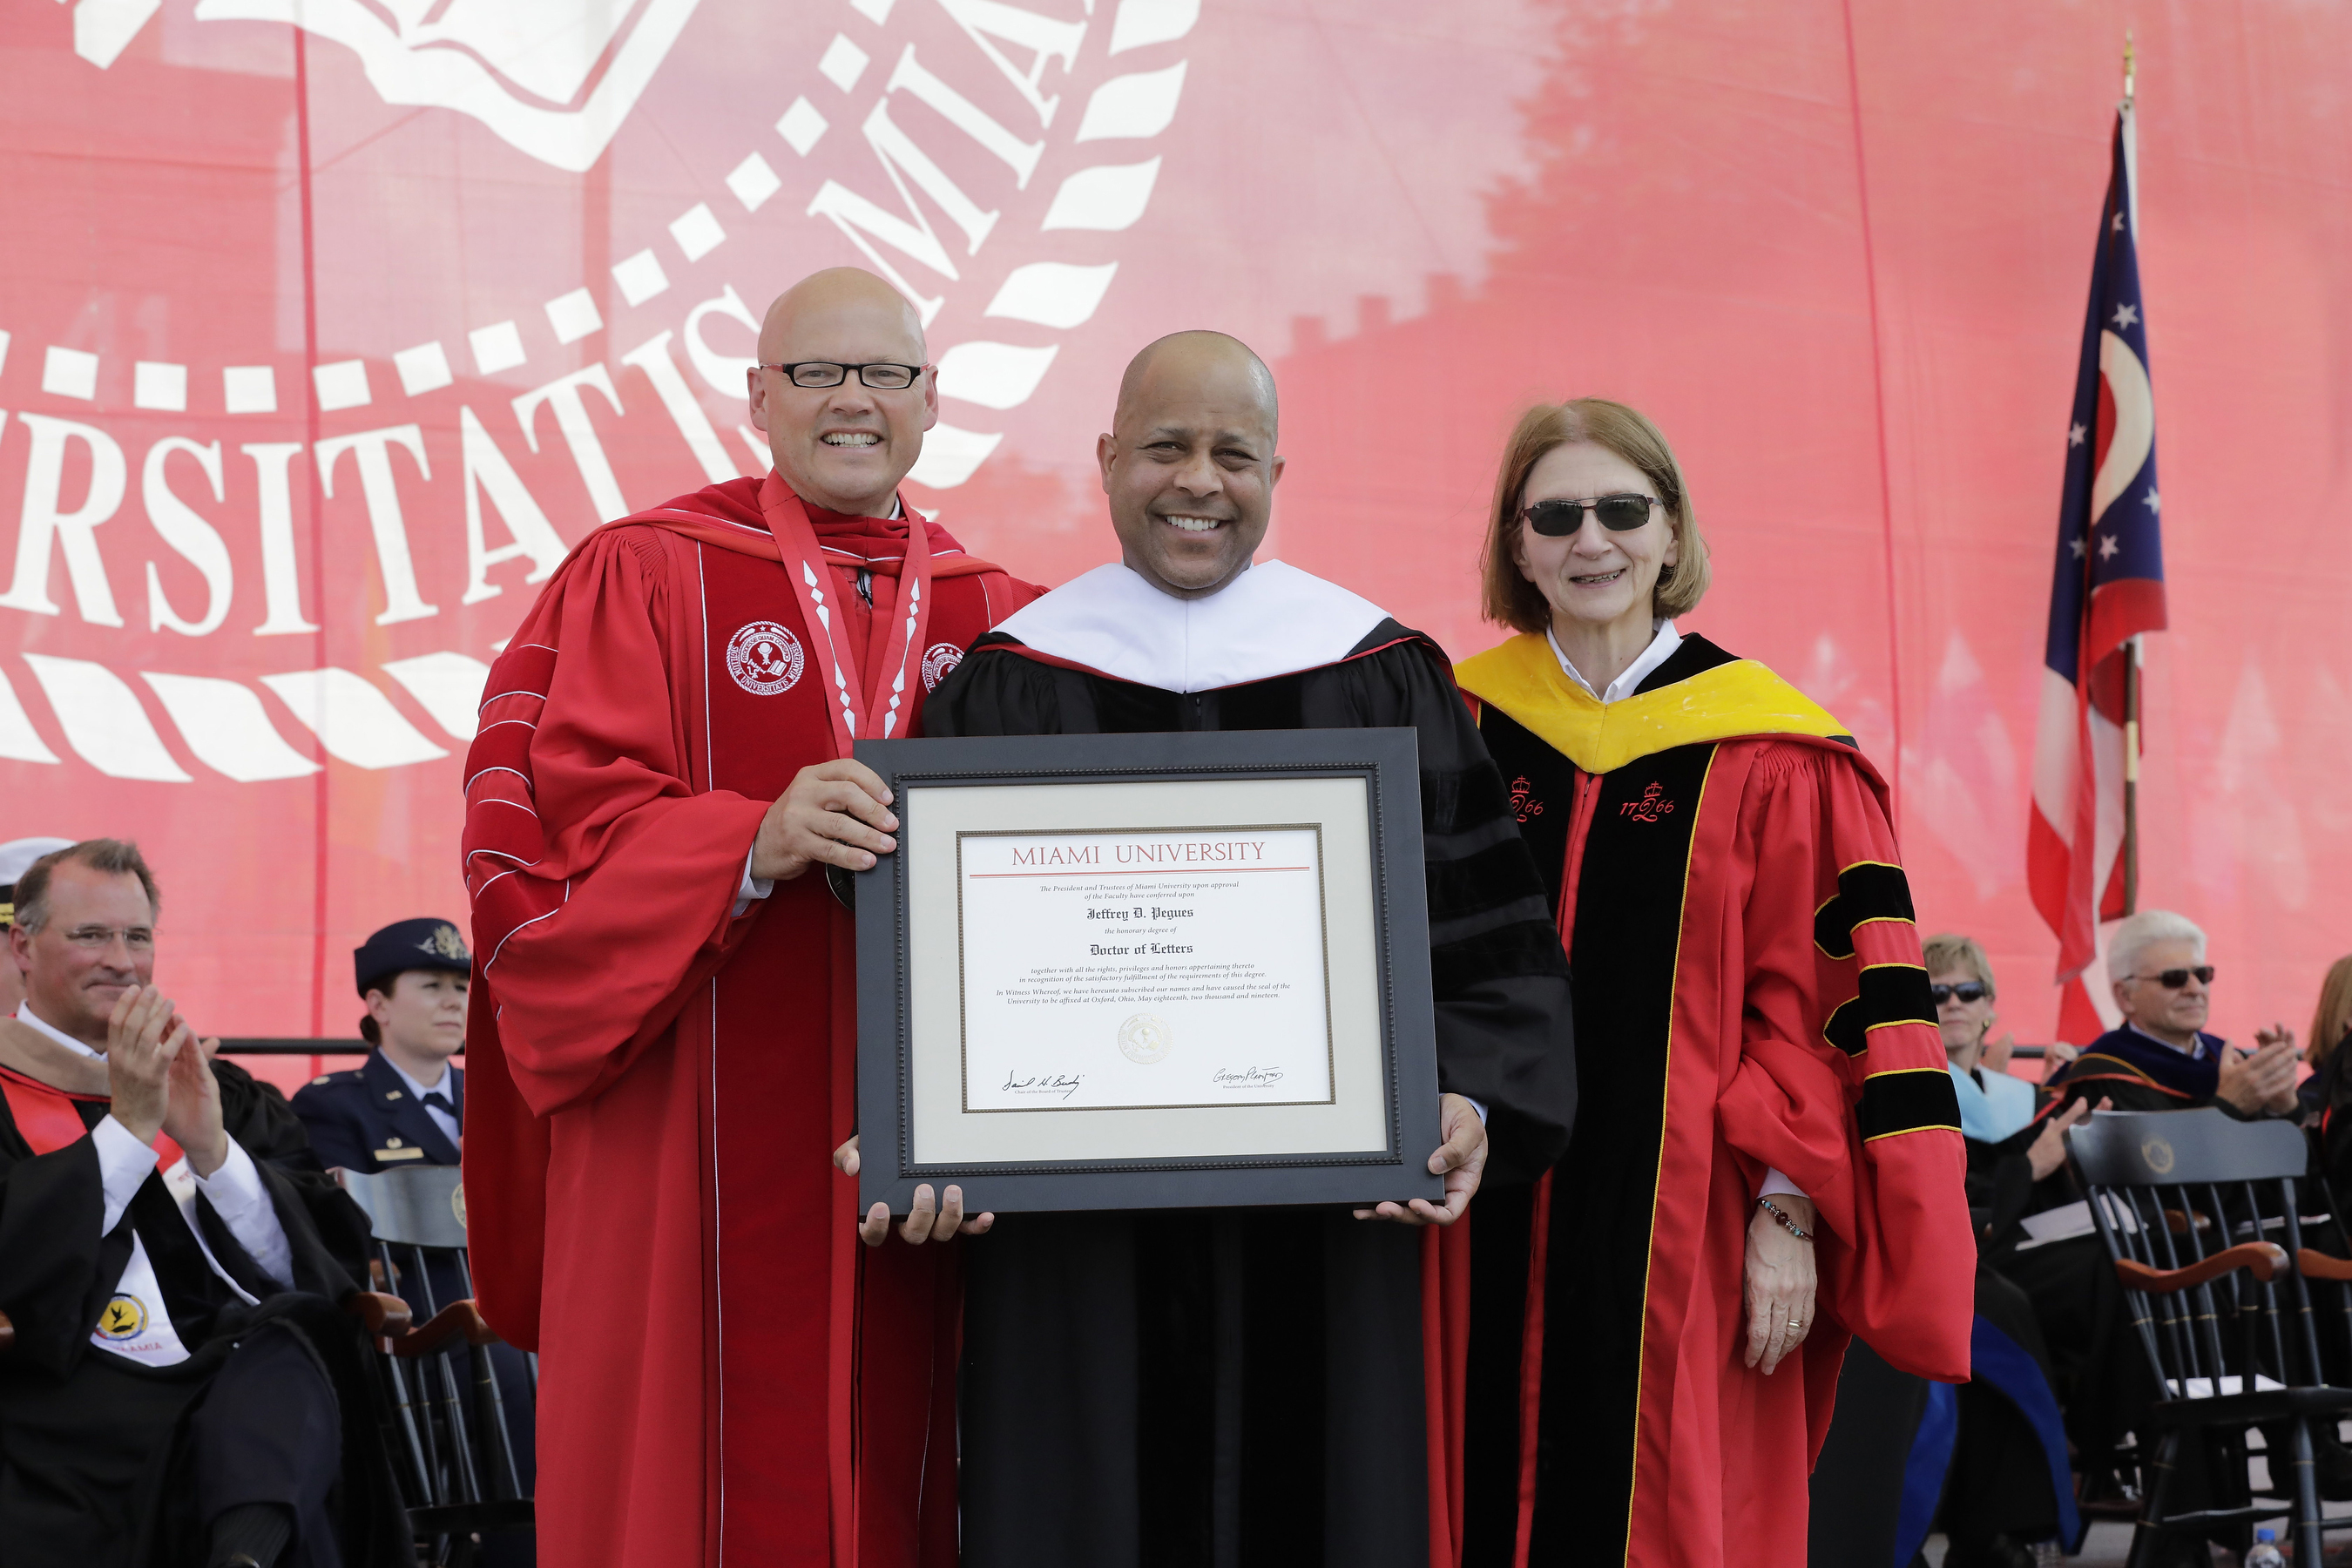 President Greg, Jeff Pegues and Phyllis Callahan are standing on stage while Jeff holds a certificate in his hands